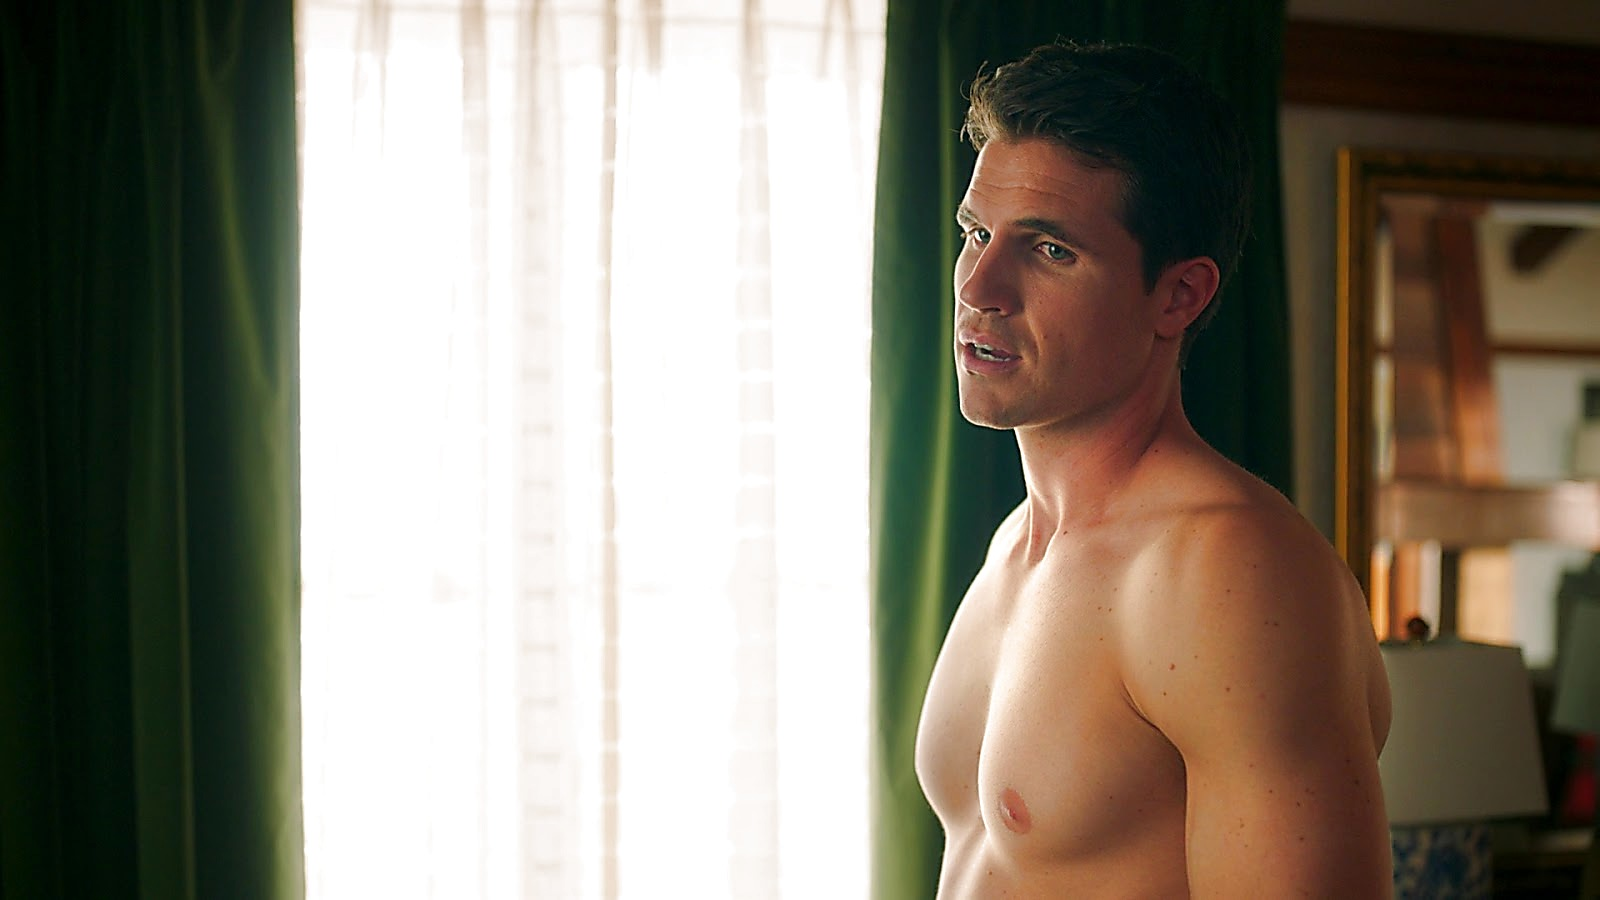 Robbie Amell sexy shirtless scene May 1, 2020, 1pm